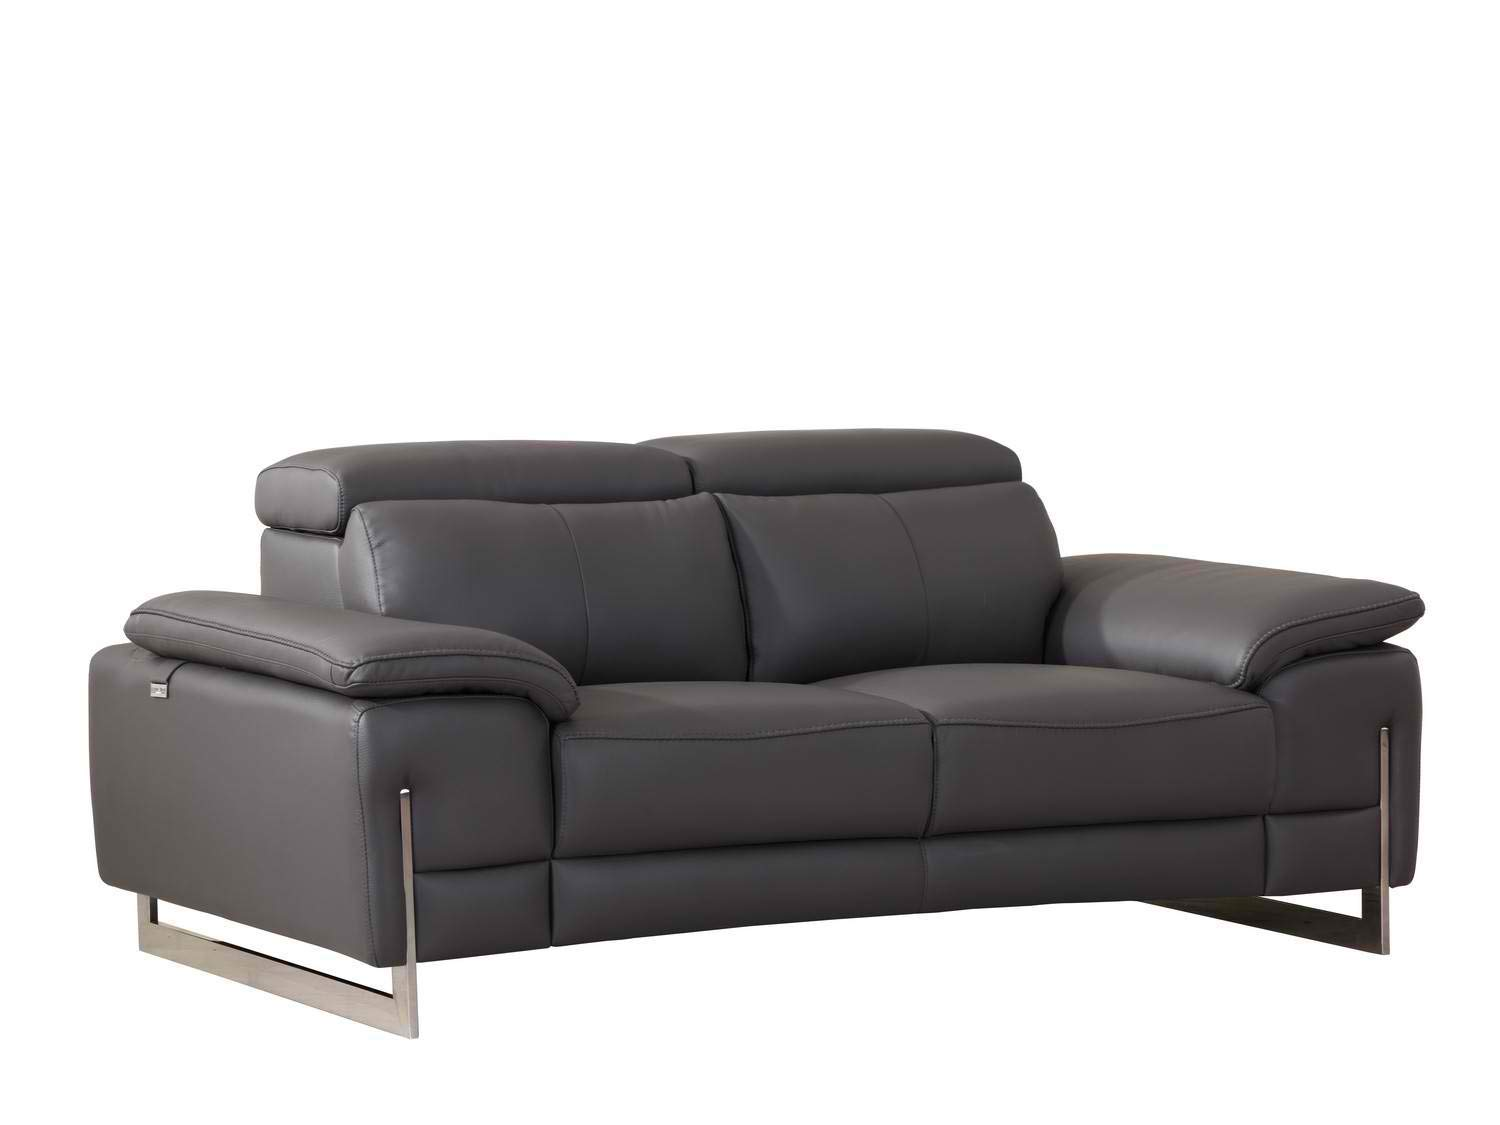 "Blackjack Furniture 636-DARK-GRAY-L Ellison Italian Leather Upholstered Sofa, 70.5"", Dark Gray"